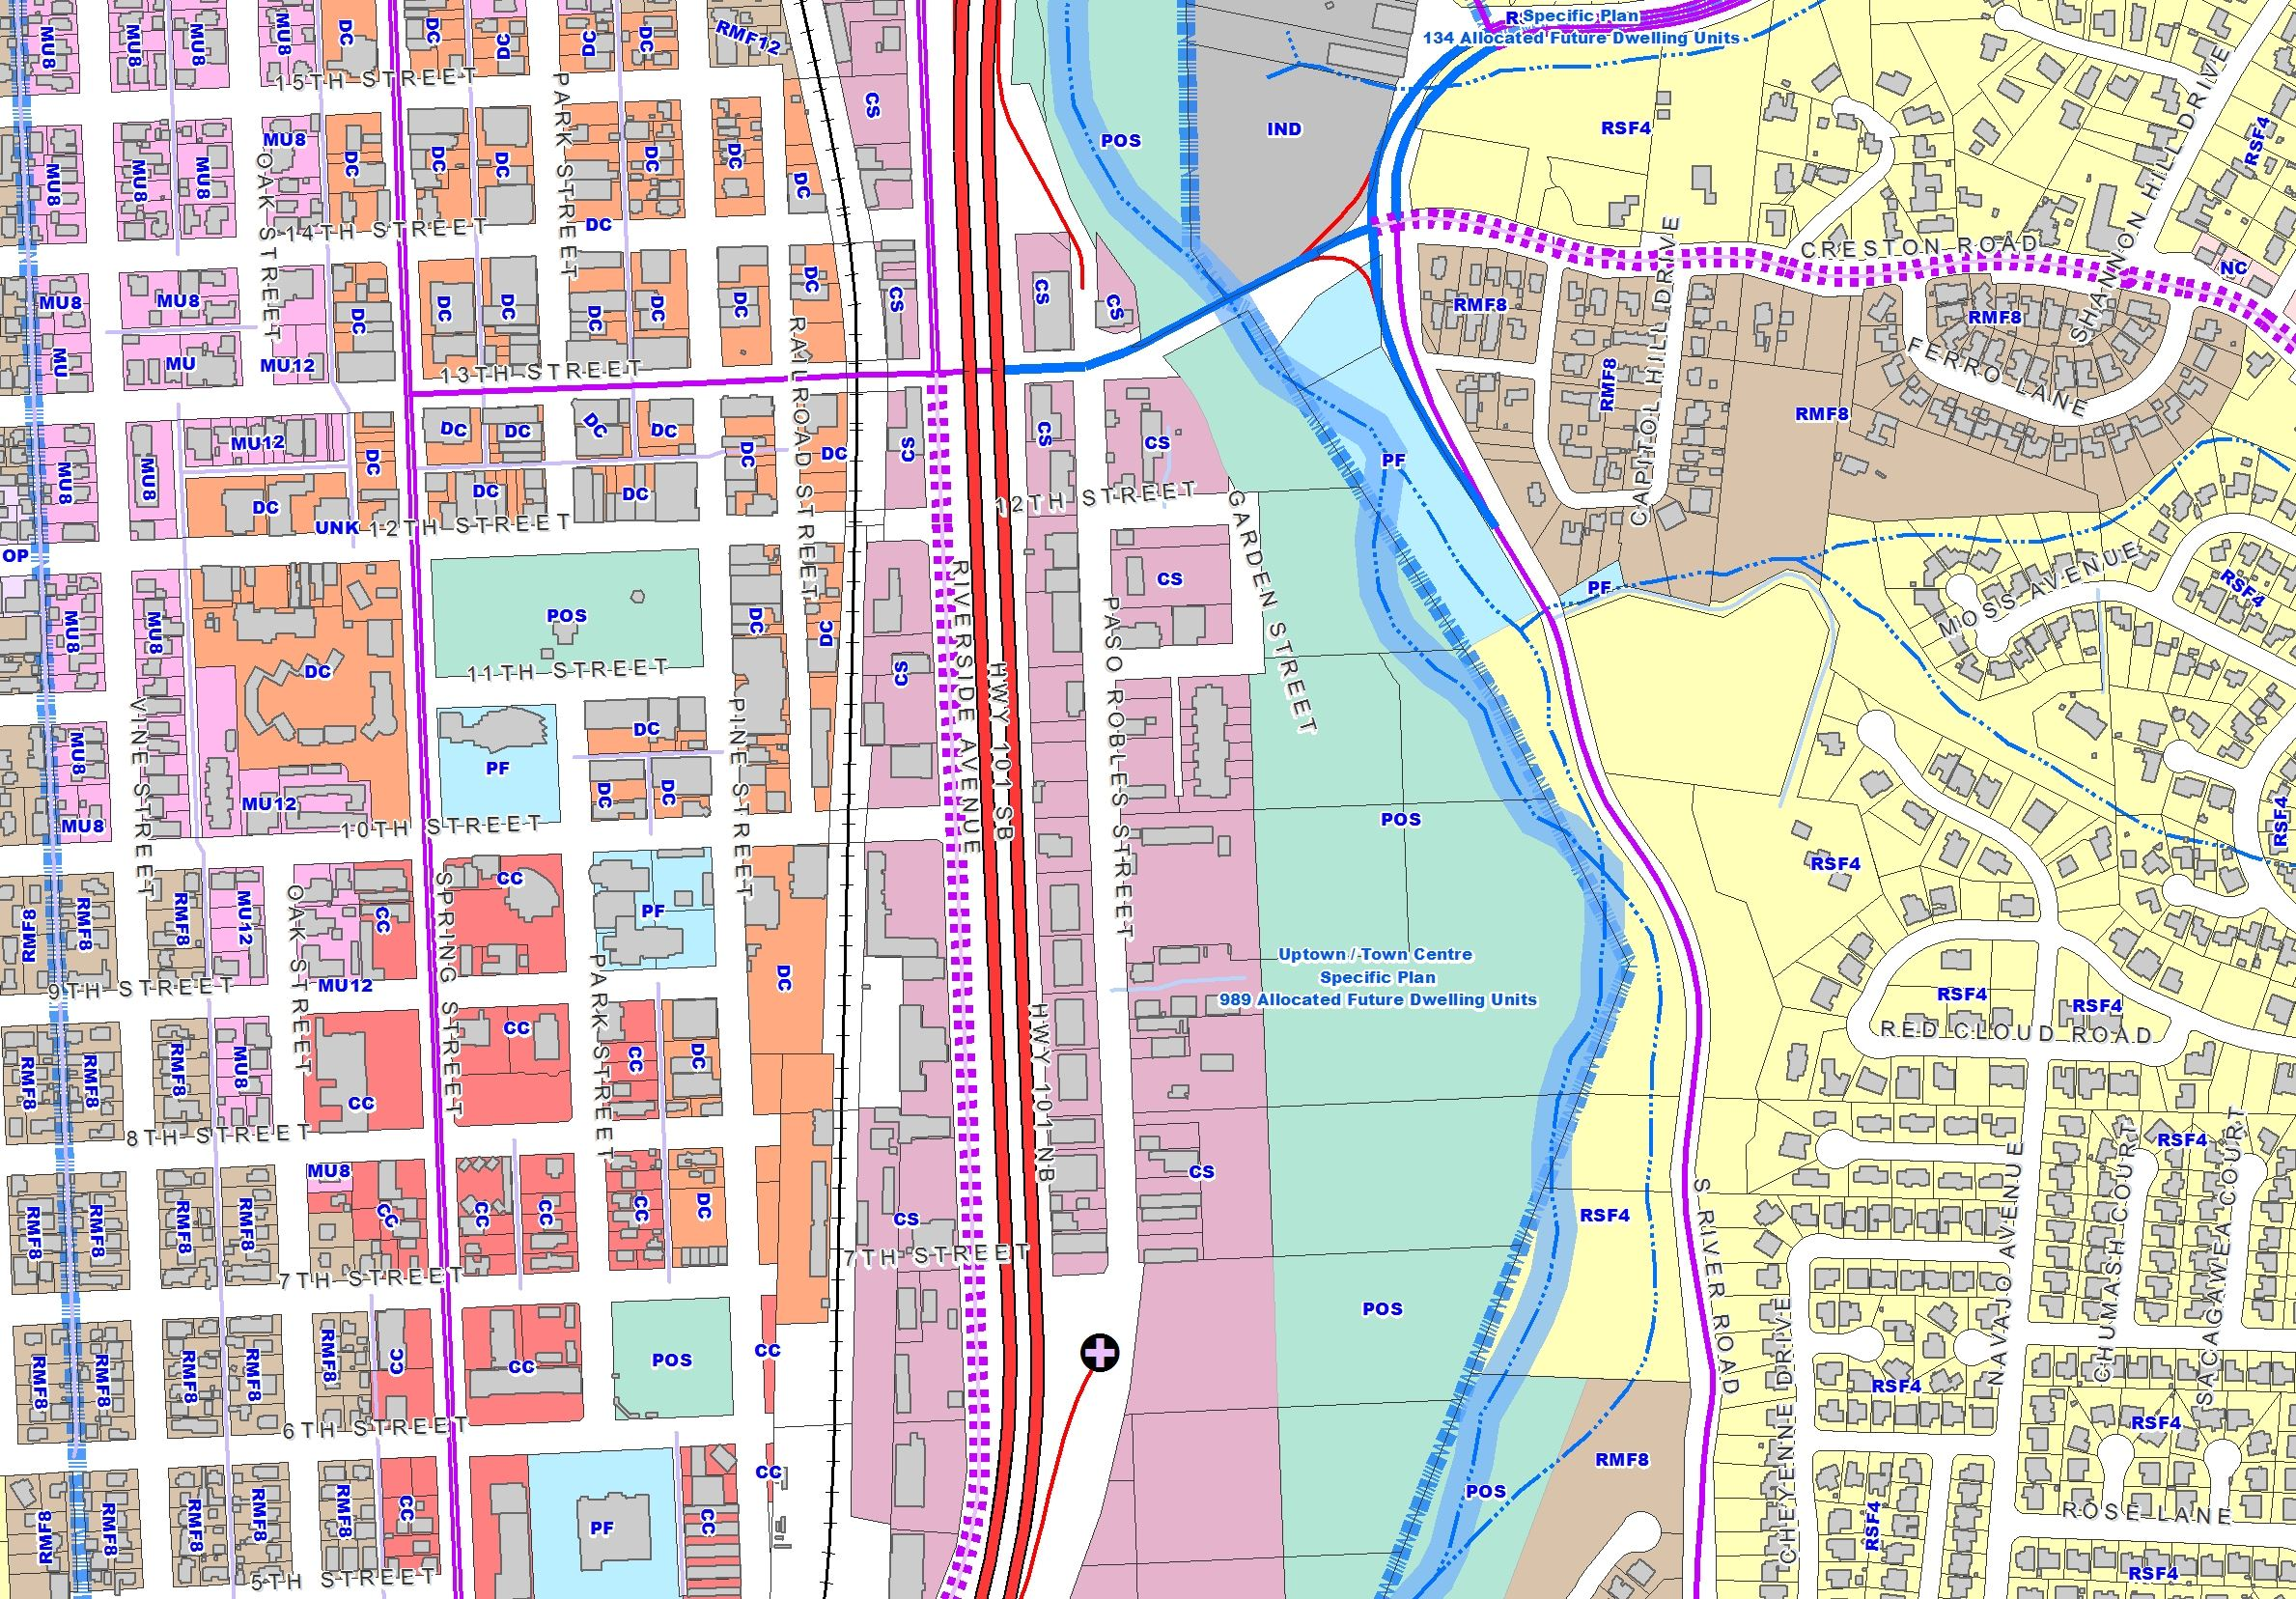 Maps - General Plan and Zoning | Paso Robles, CA Plan Street Map on state map, nottingham map, rail map, park map, river map, country map, neighborhood map, phoenix map, landscape map, water map, address map, zone map, home map, richmond map, rome map, building map, trail map, road map, office map, car map,